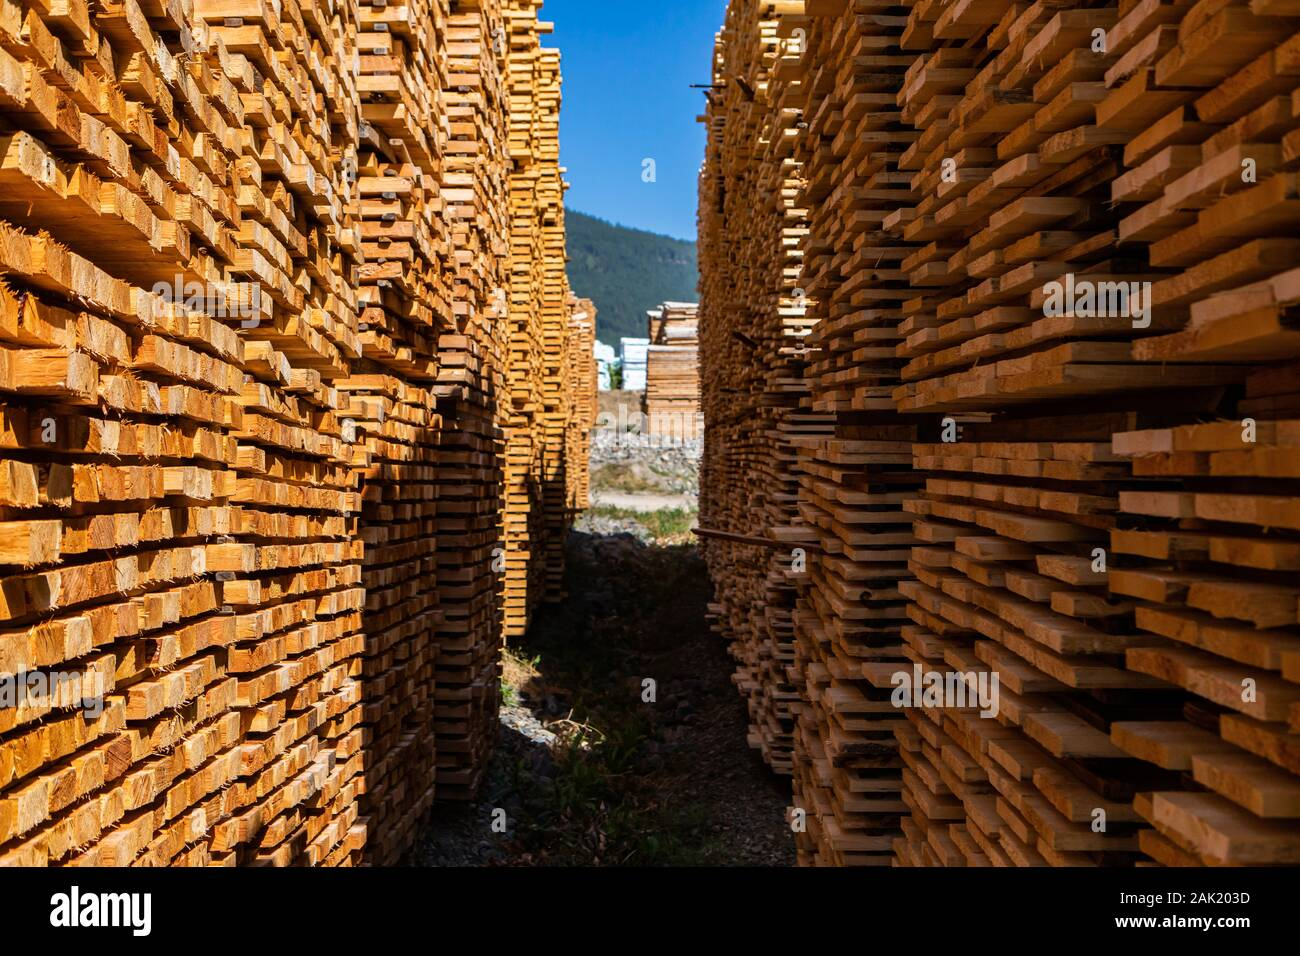 how to make an outdoor bamboo privacy screen woodworking.htm manufactured wood stock photos   manufactured wood stock images  manufactured wood stock photos